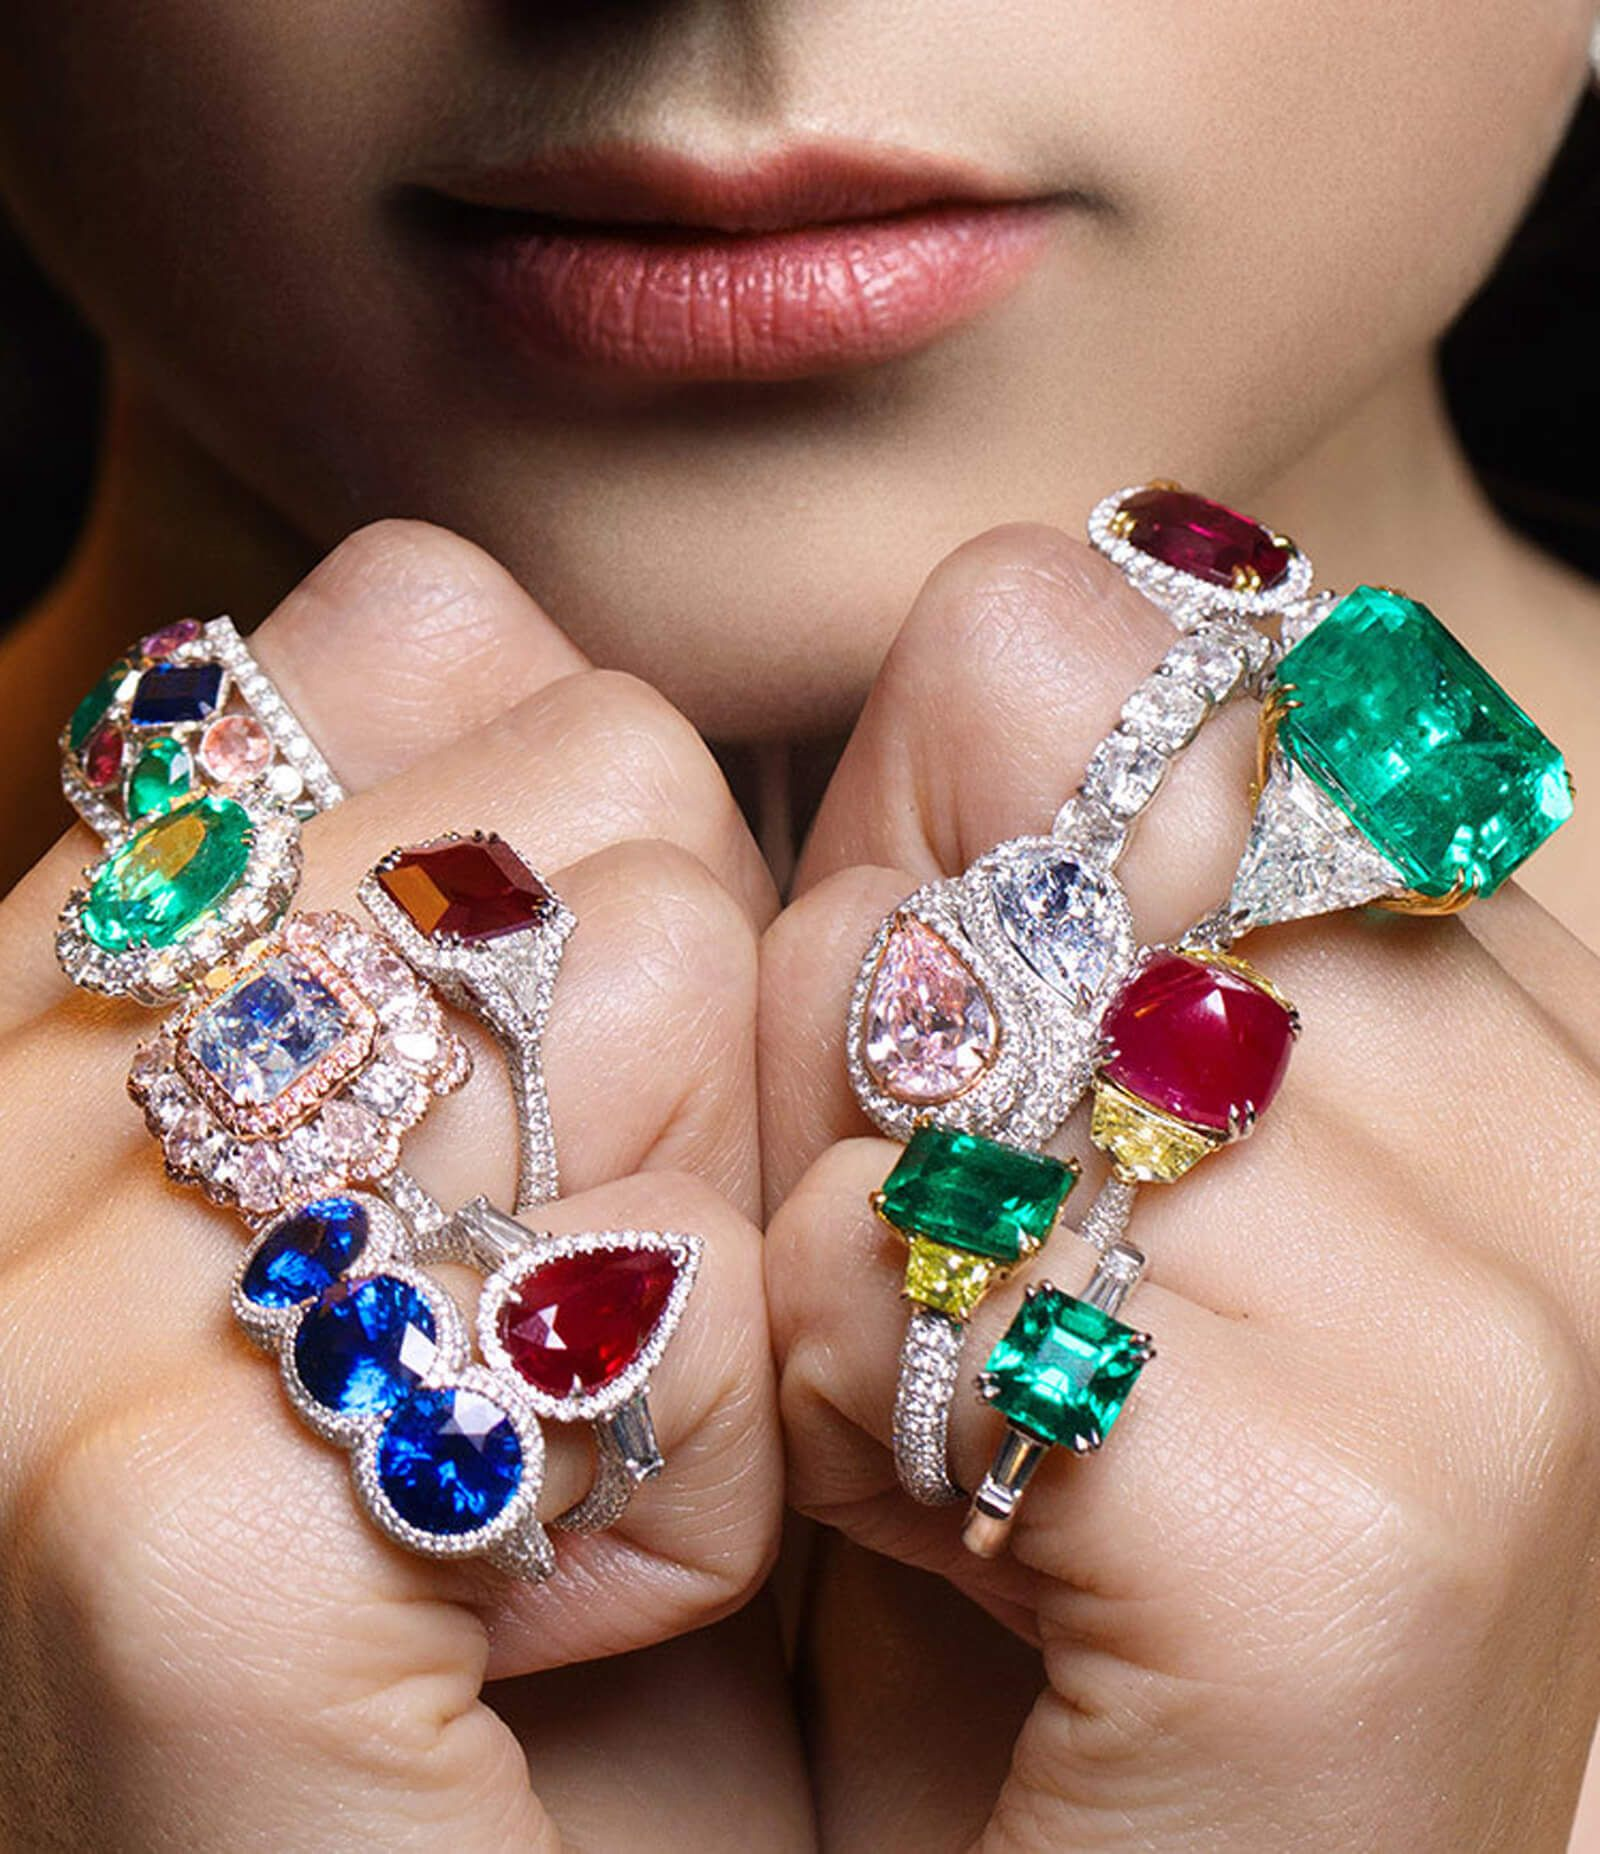 Are you buying precious jewelry online?